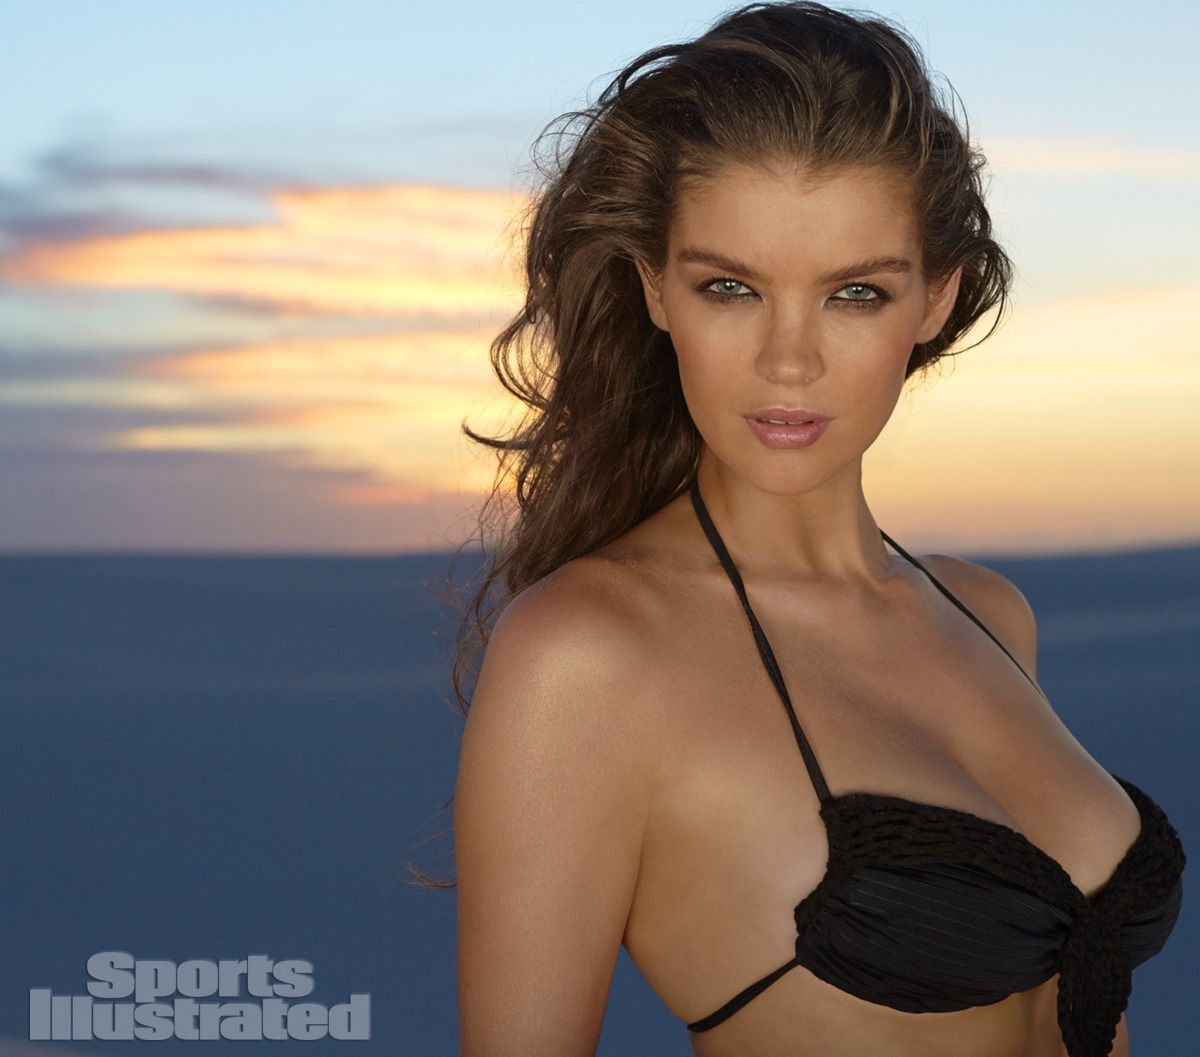 natasha-barnard-in-sports-illustrated-2014-swimsuit-issue_12.jpg - 100.35 KB